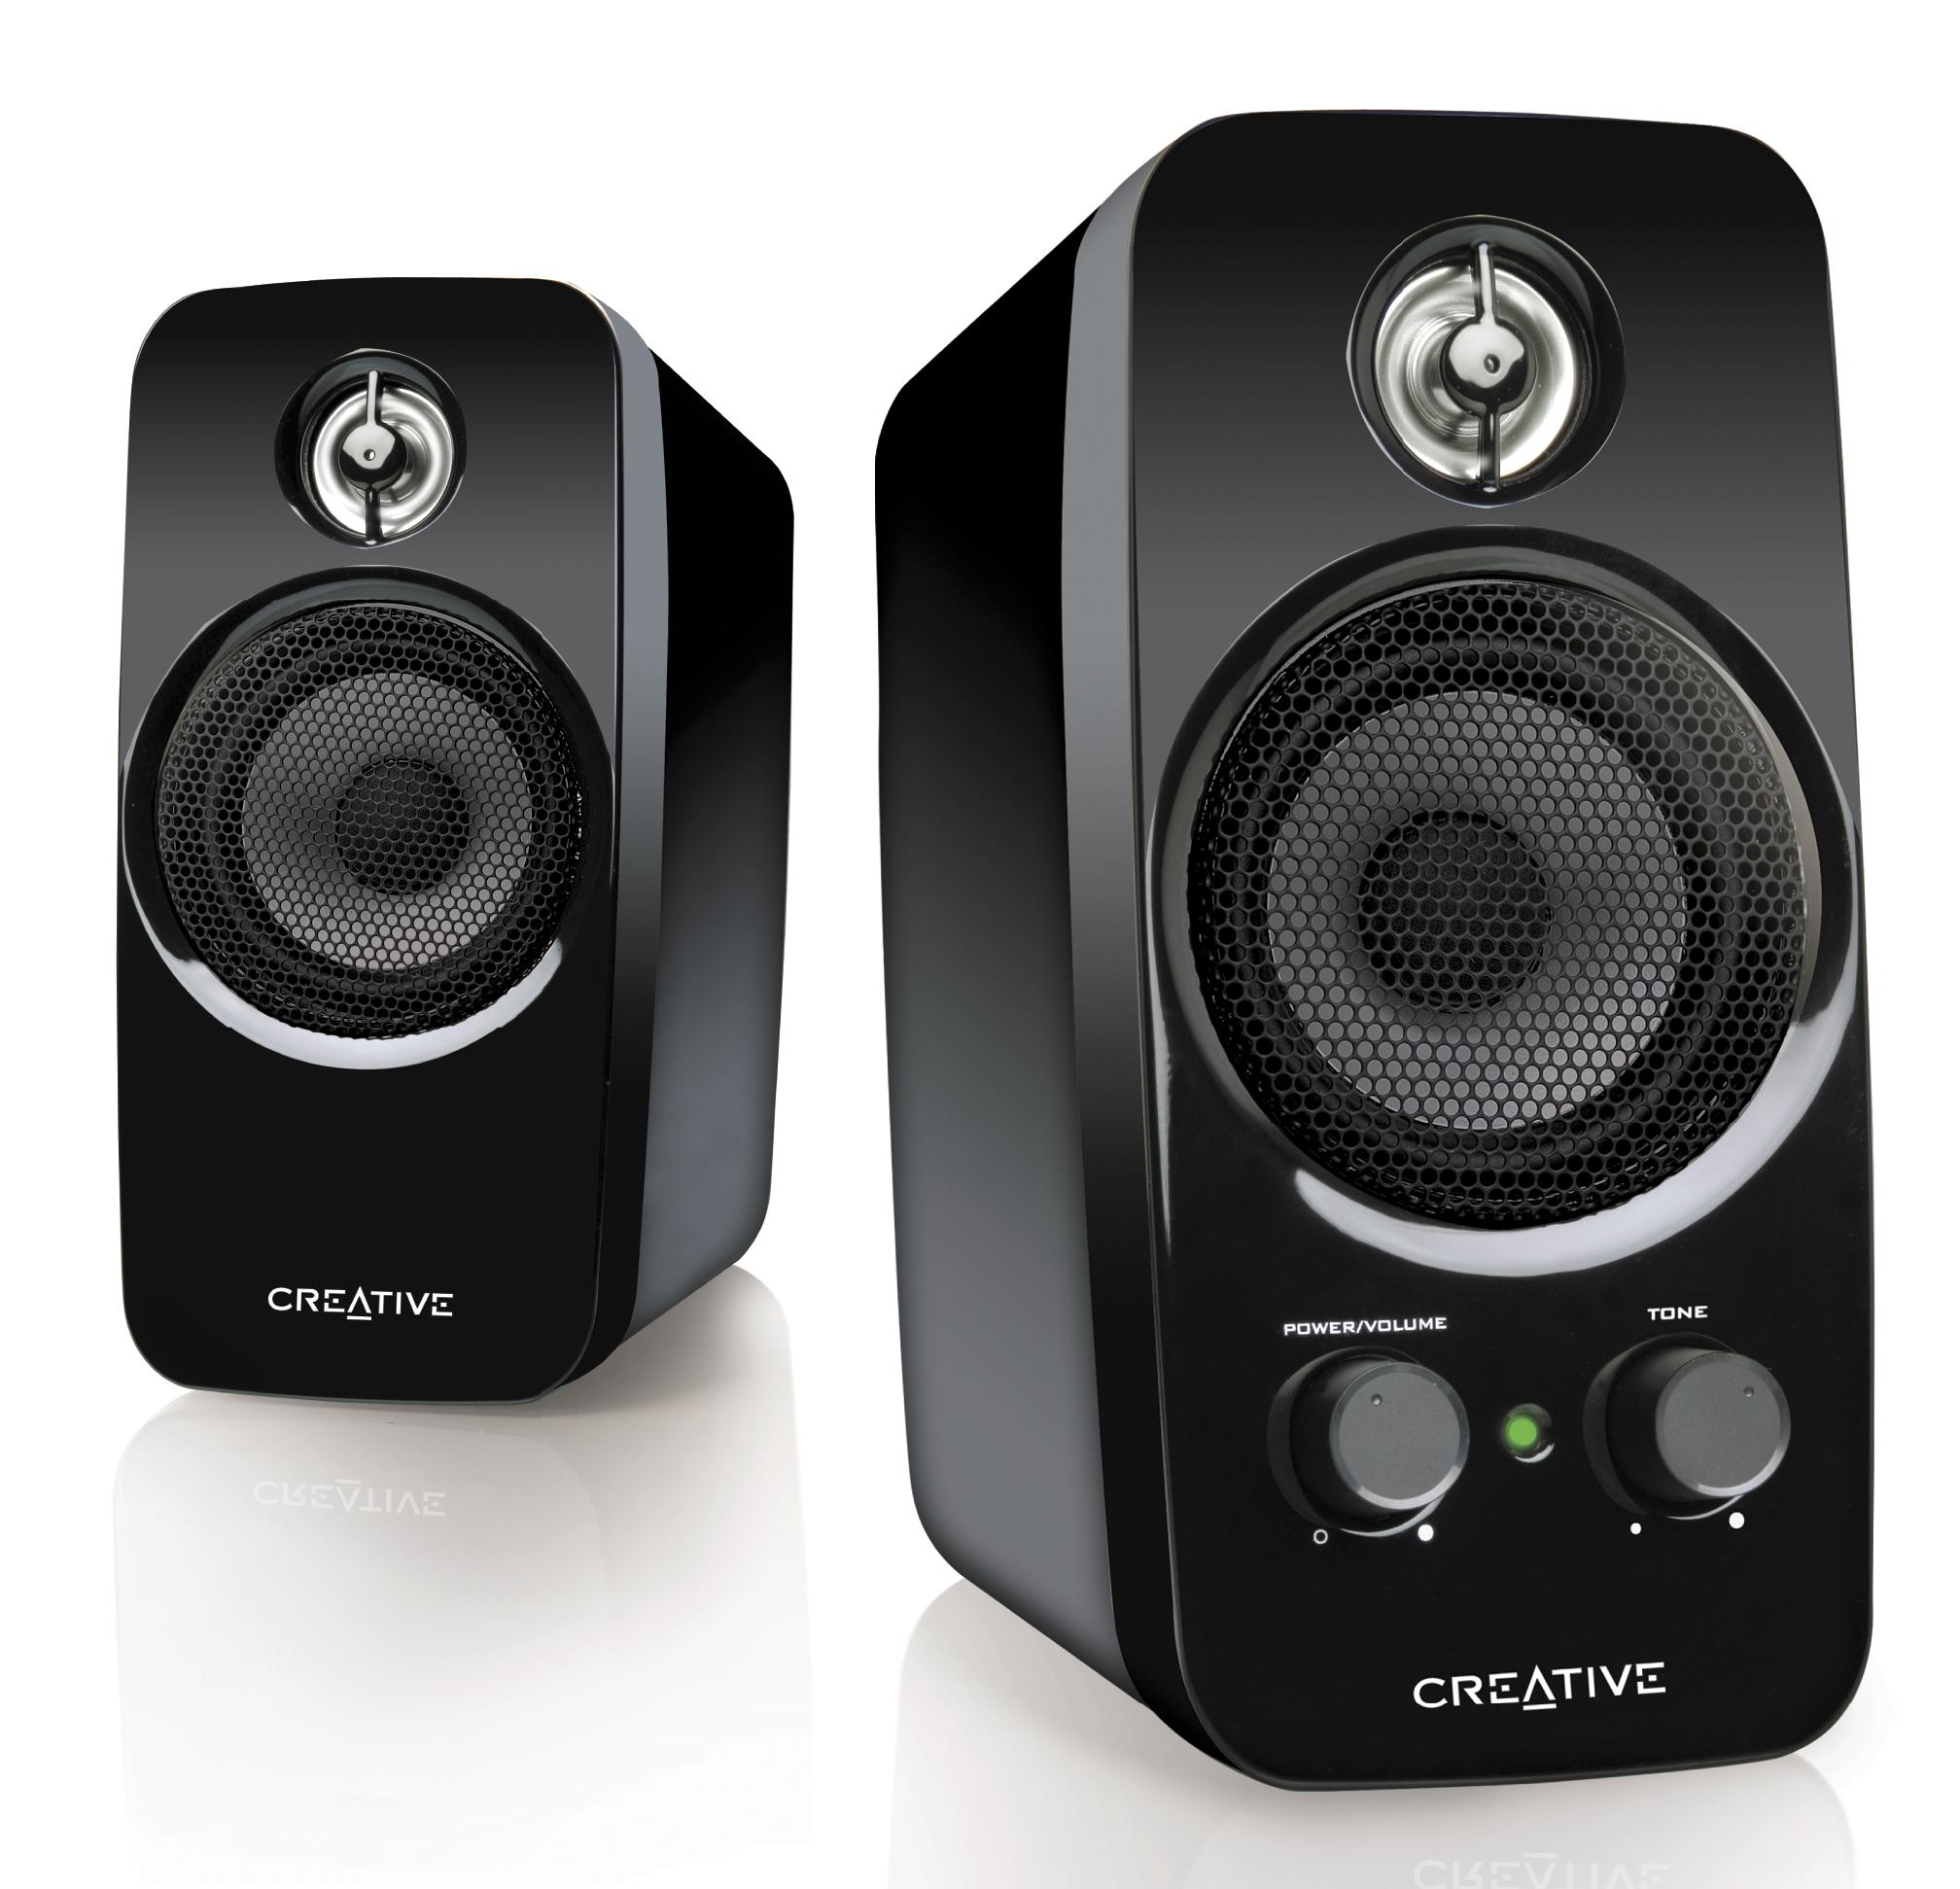 creative inspire t10 multimedia speakers electronics. Black Bedroom Furniture Sets. Home Design Ideas